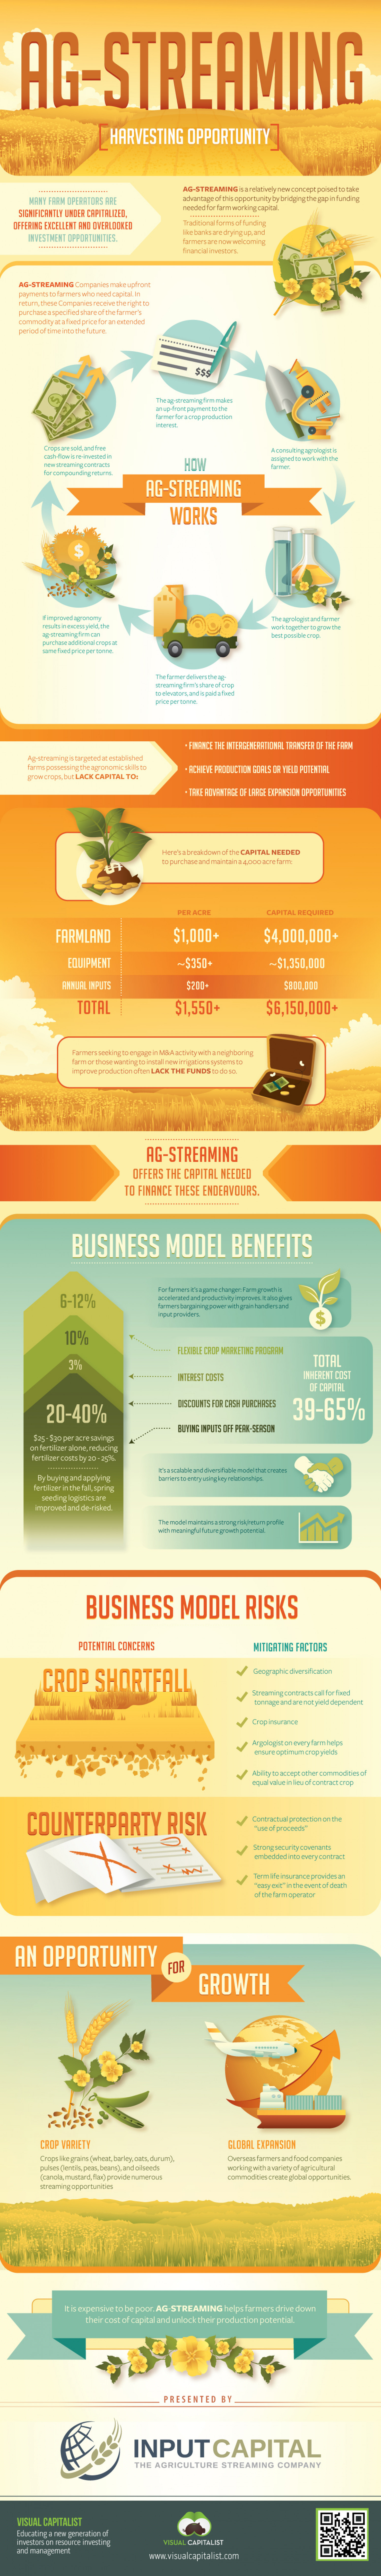 Agricultural Streaming: Harvesting Opportunity Infographic